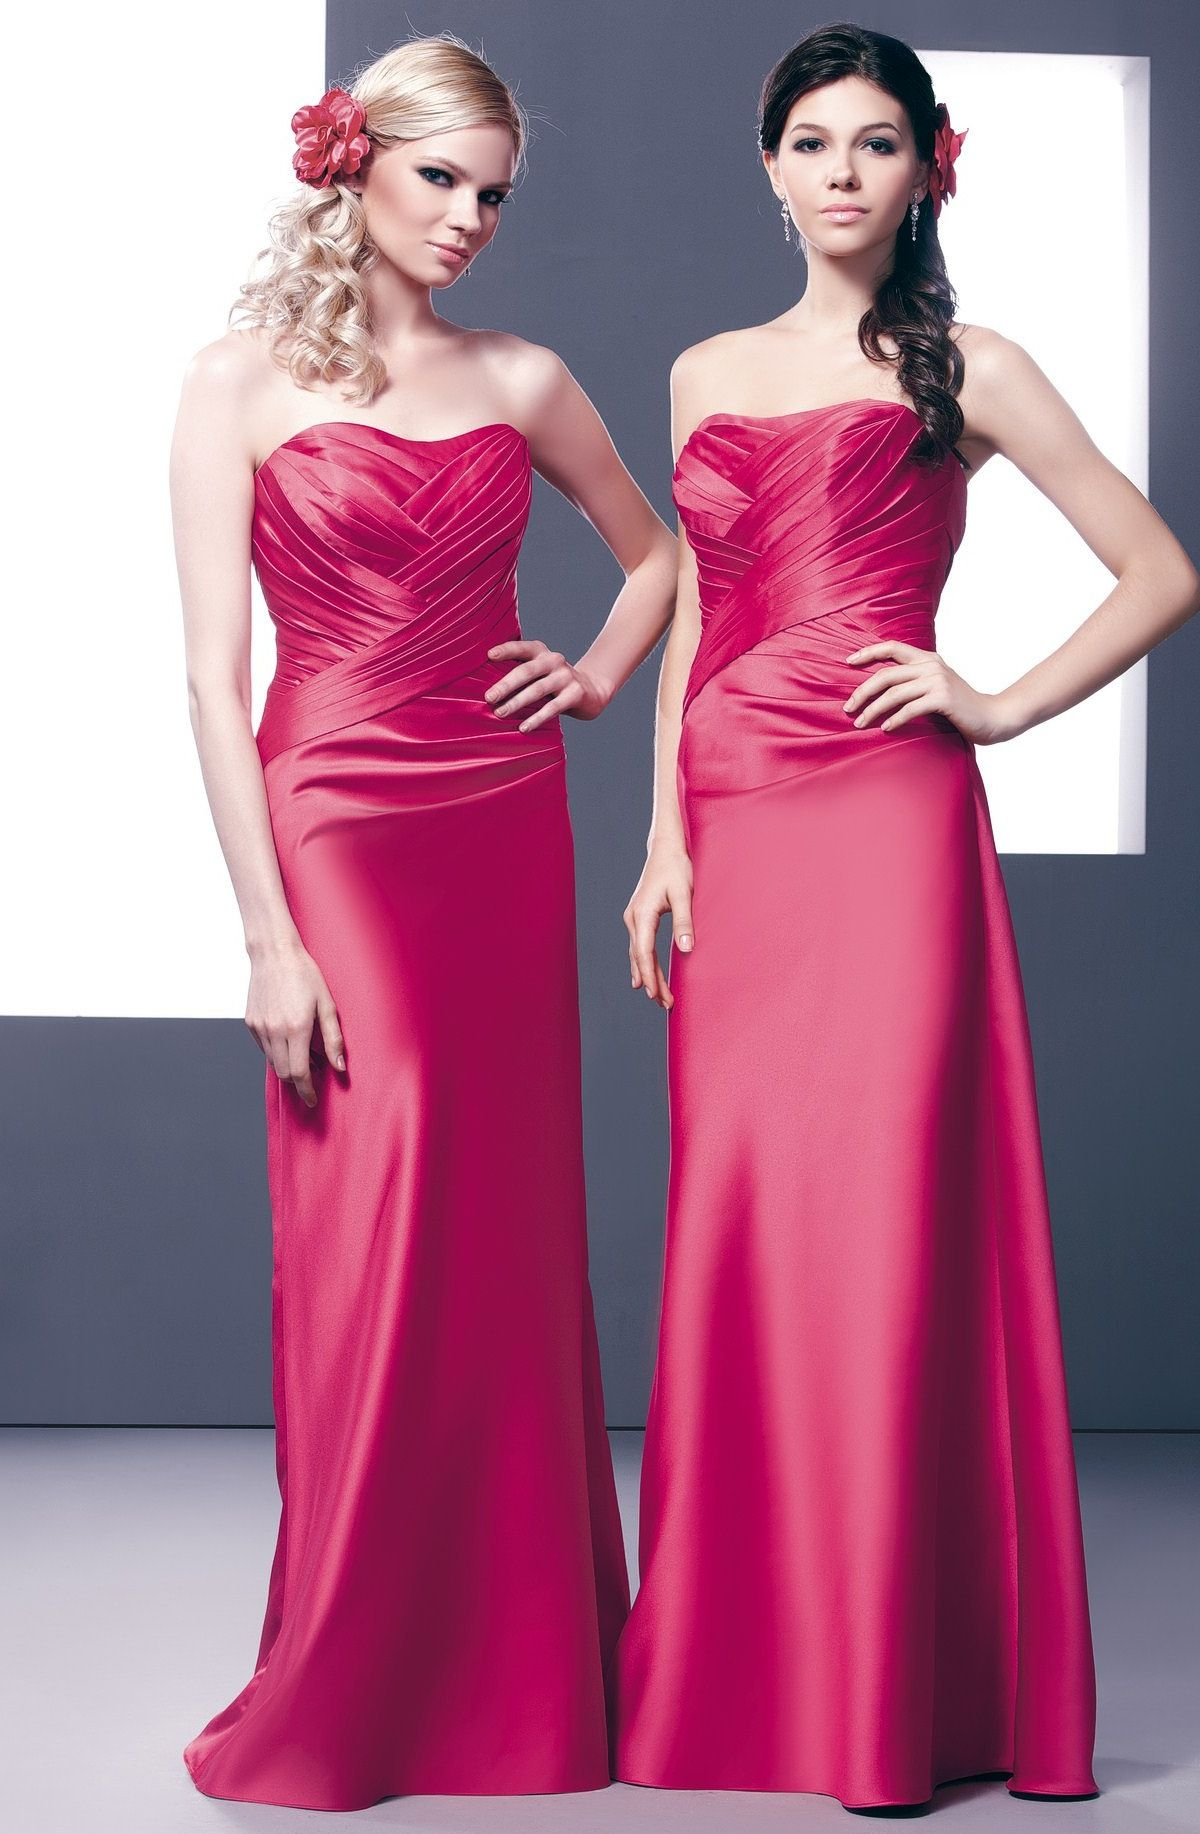 Floor Length Ruched Strapless Hot Pink Bridesmaid Dress.jpg 1,200 ...